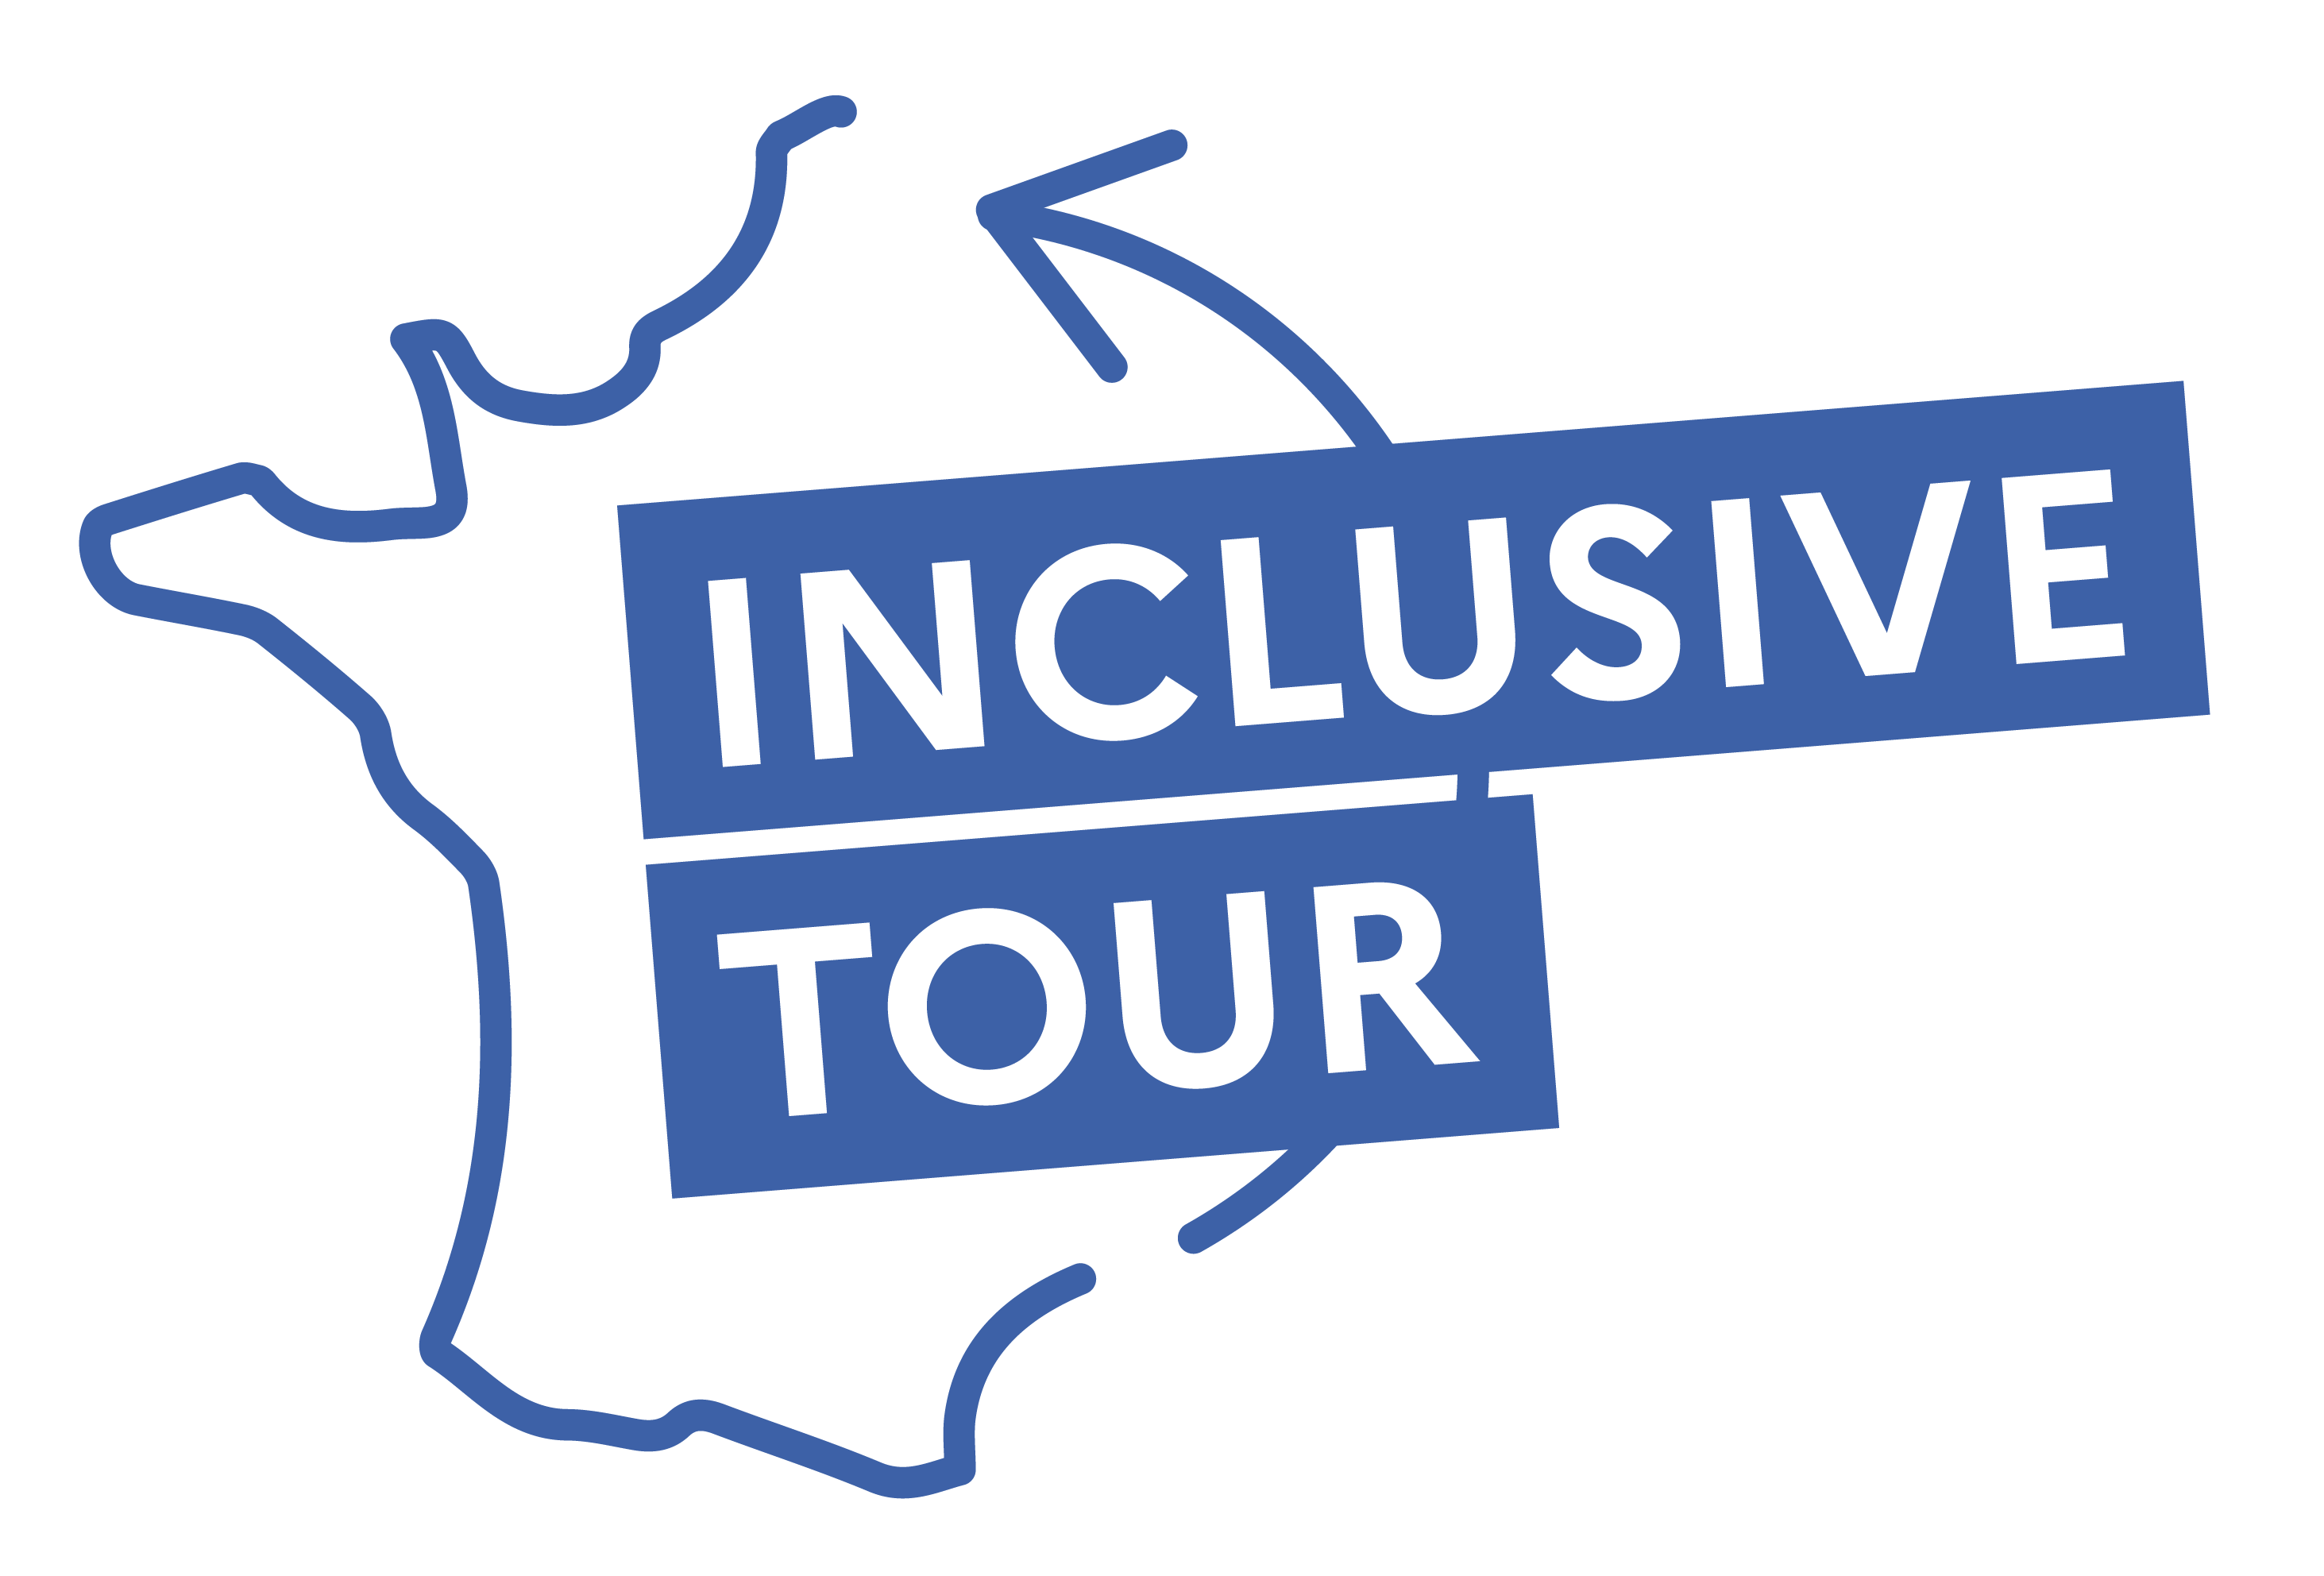 LILLE - Inclusive Tour